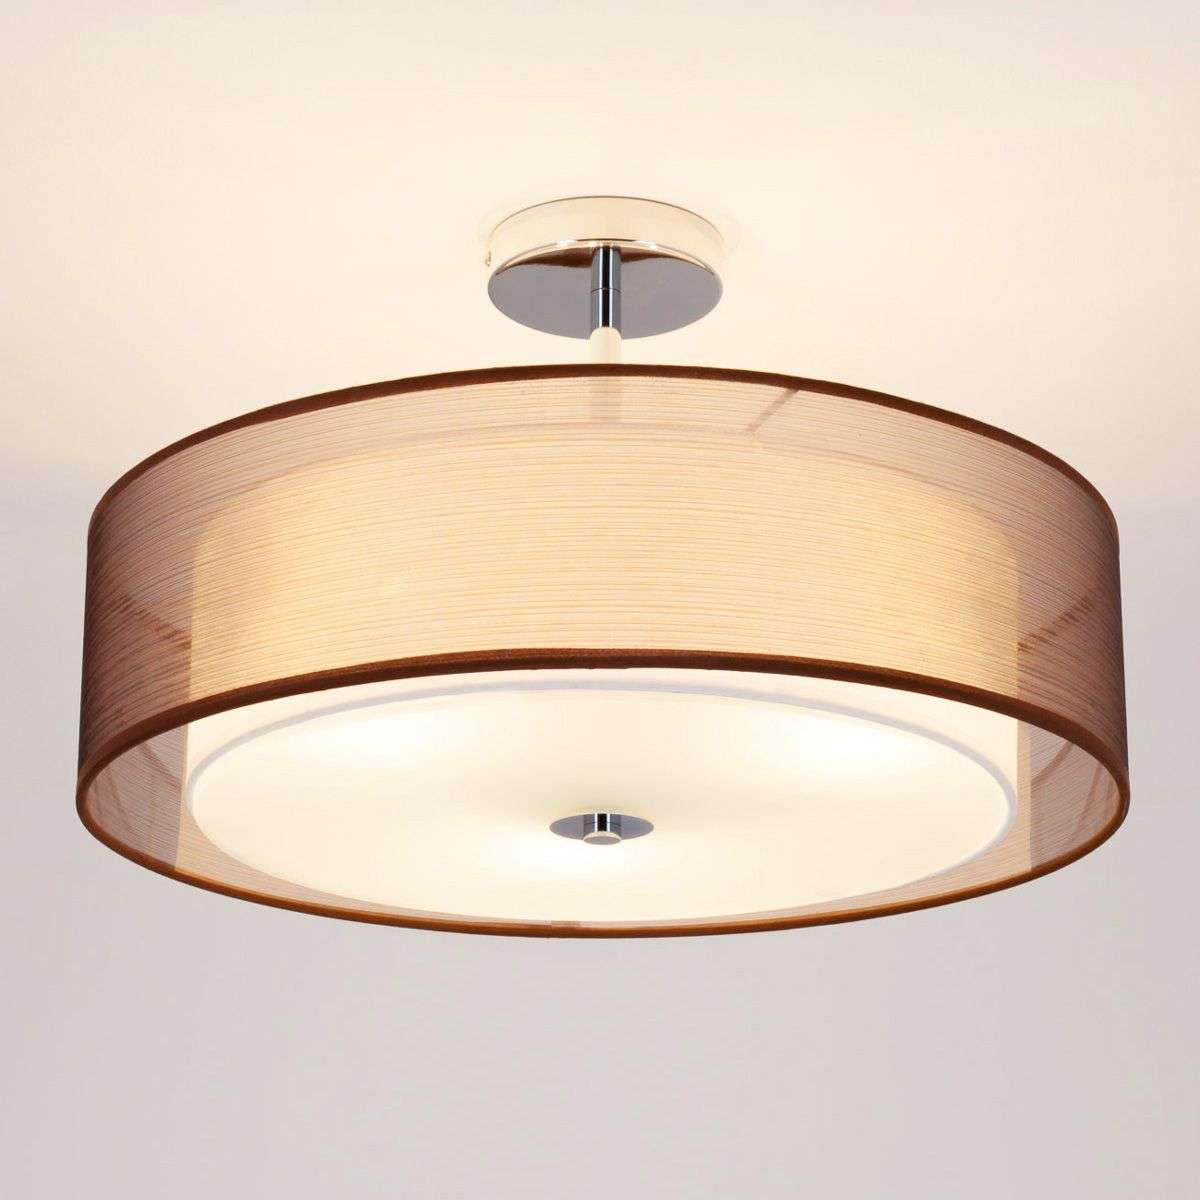 Pikka LED ceiling light with a brown lampshade | Lights.co.uk